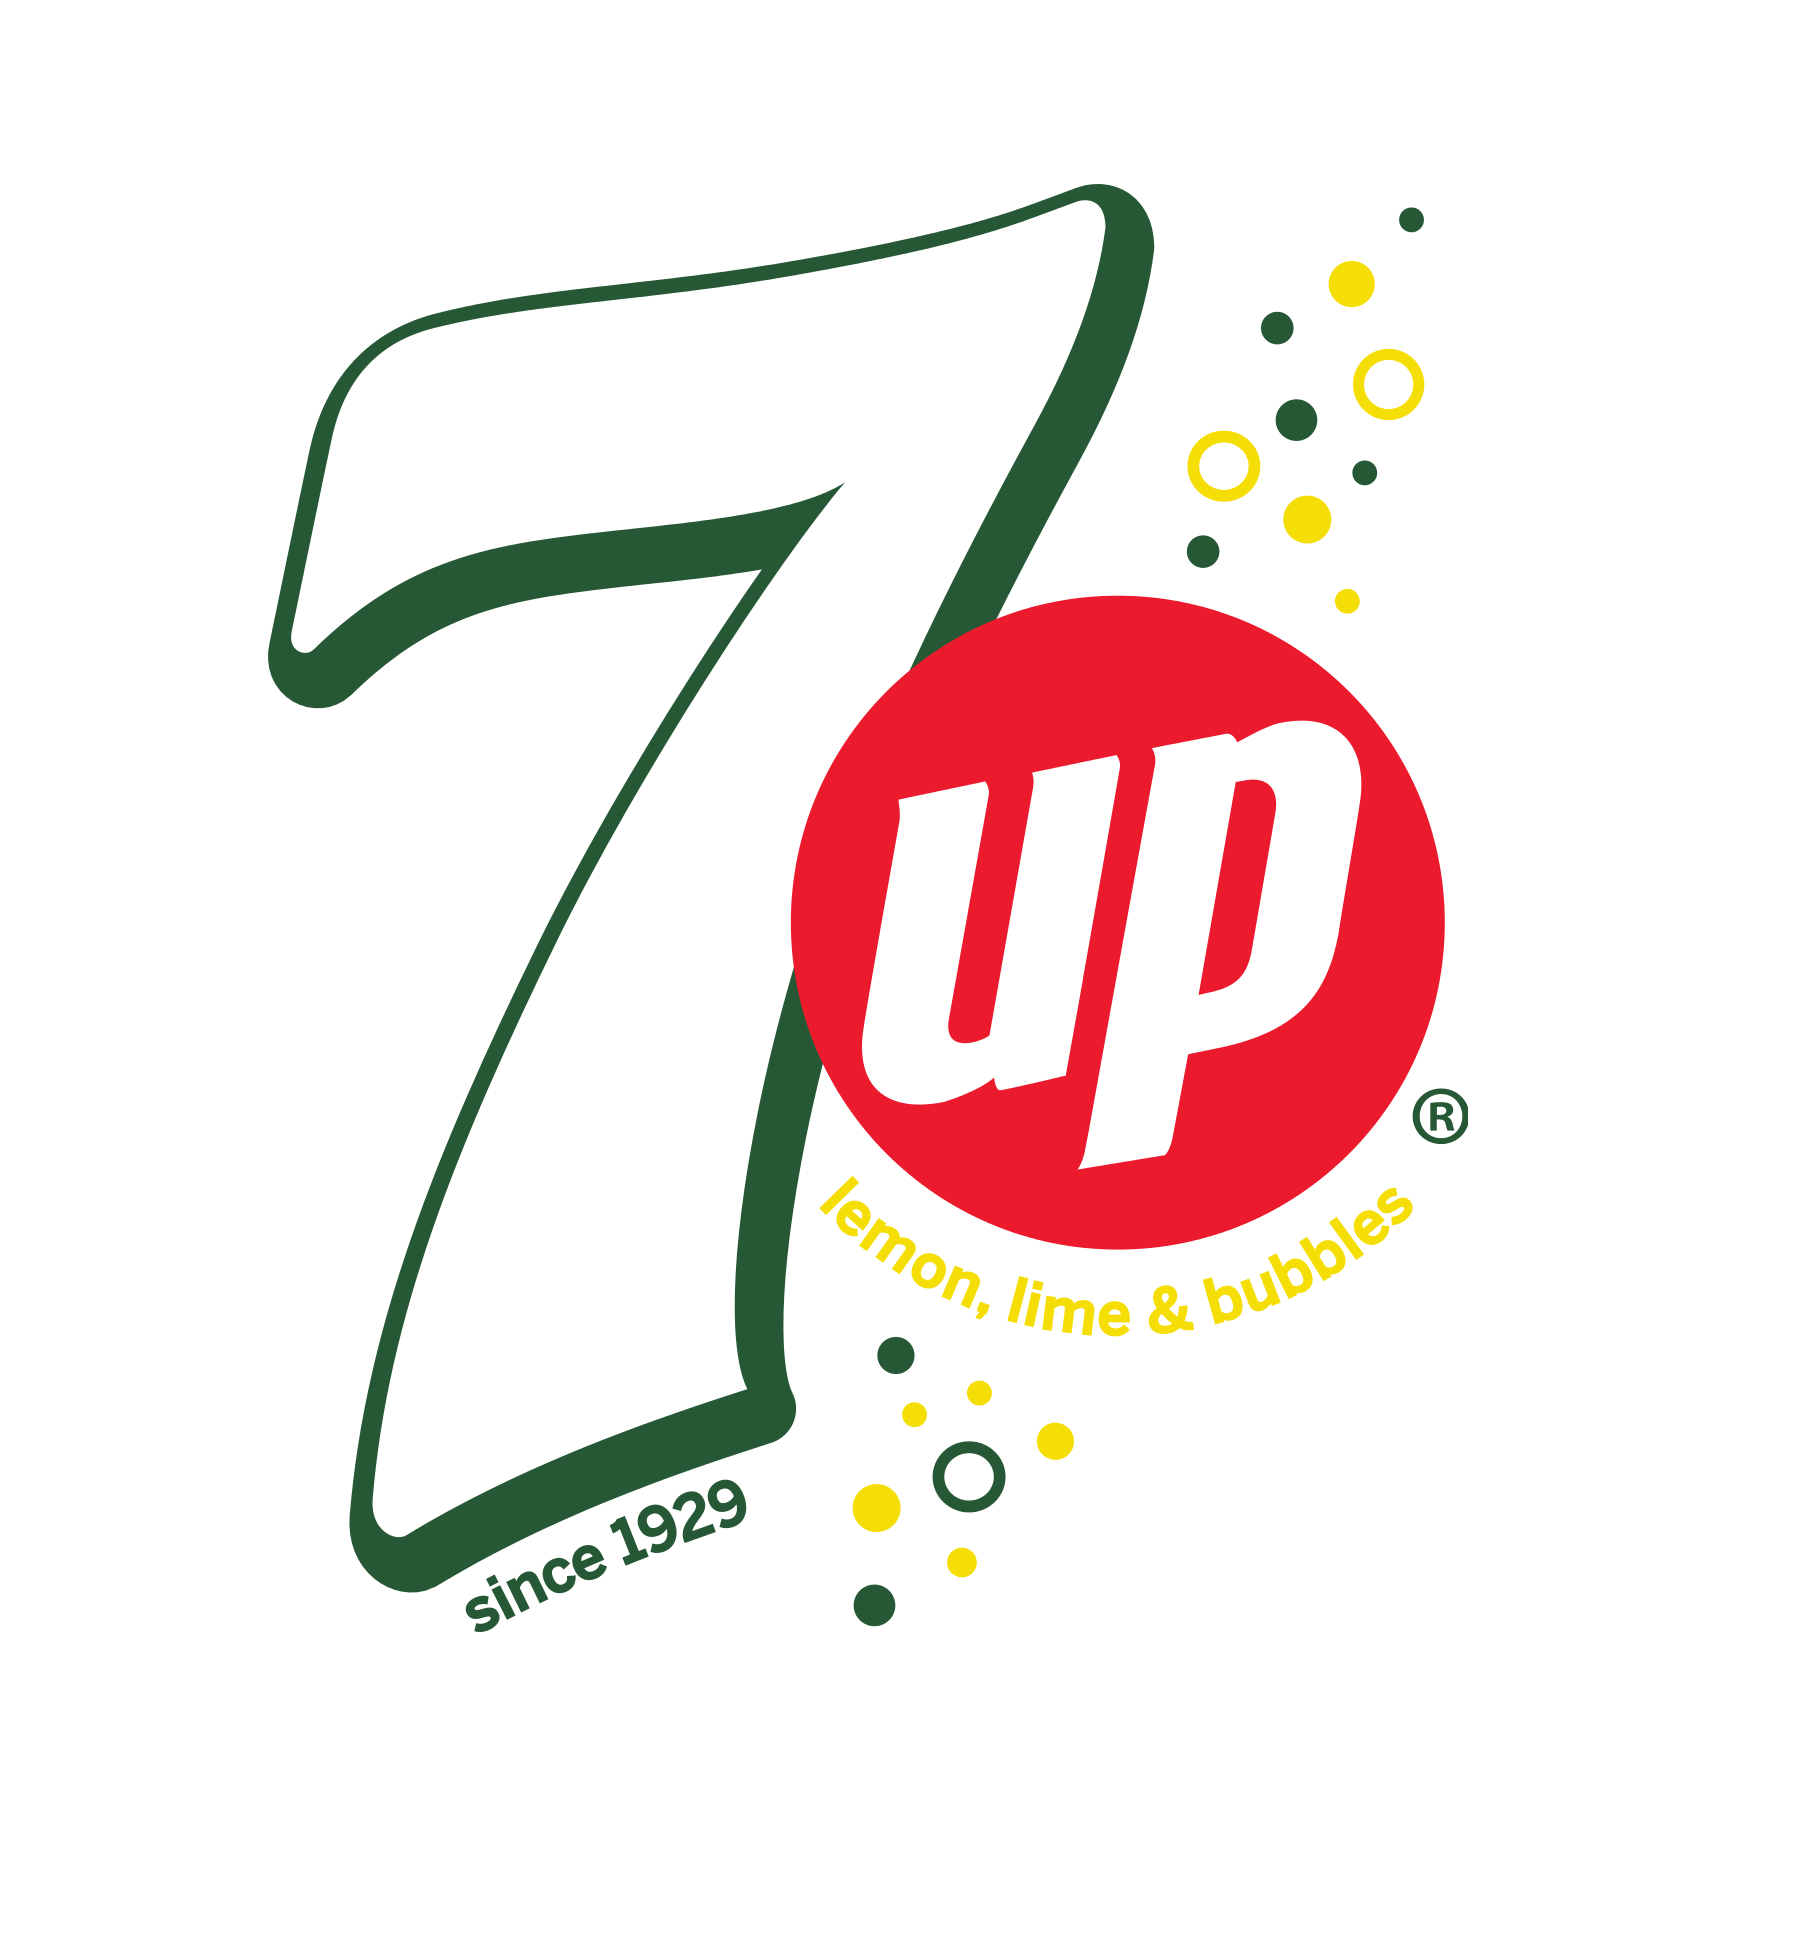 7UP BOTTLE delist